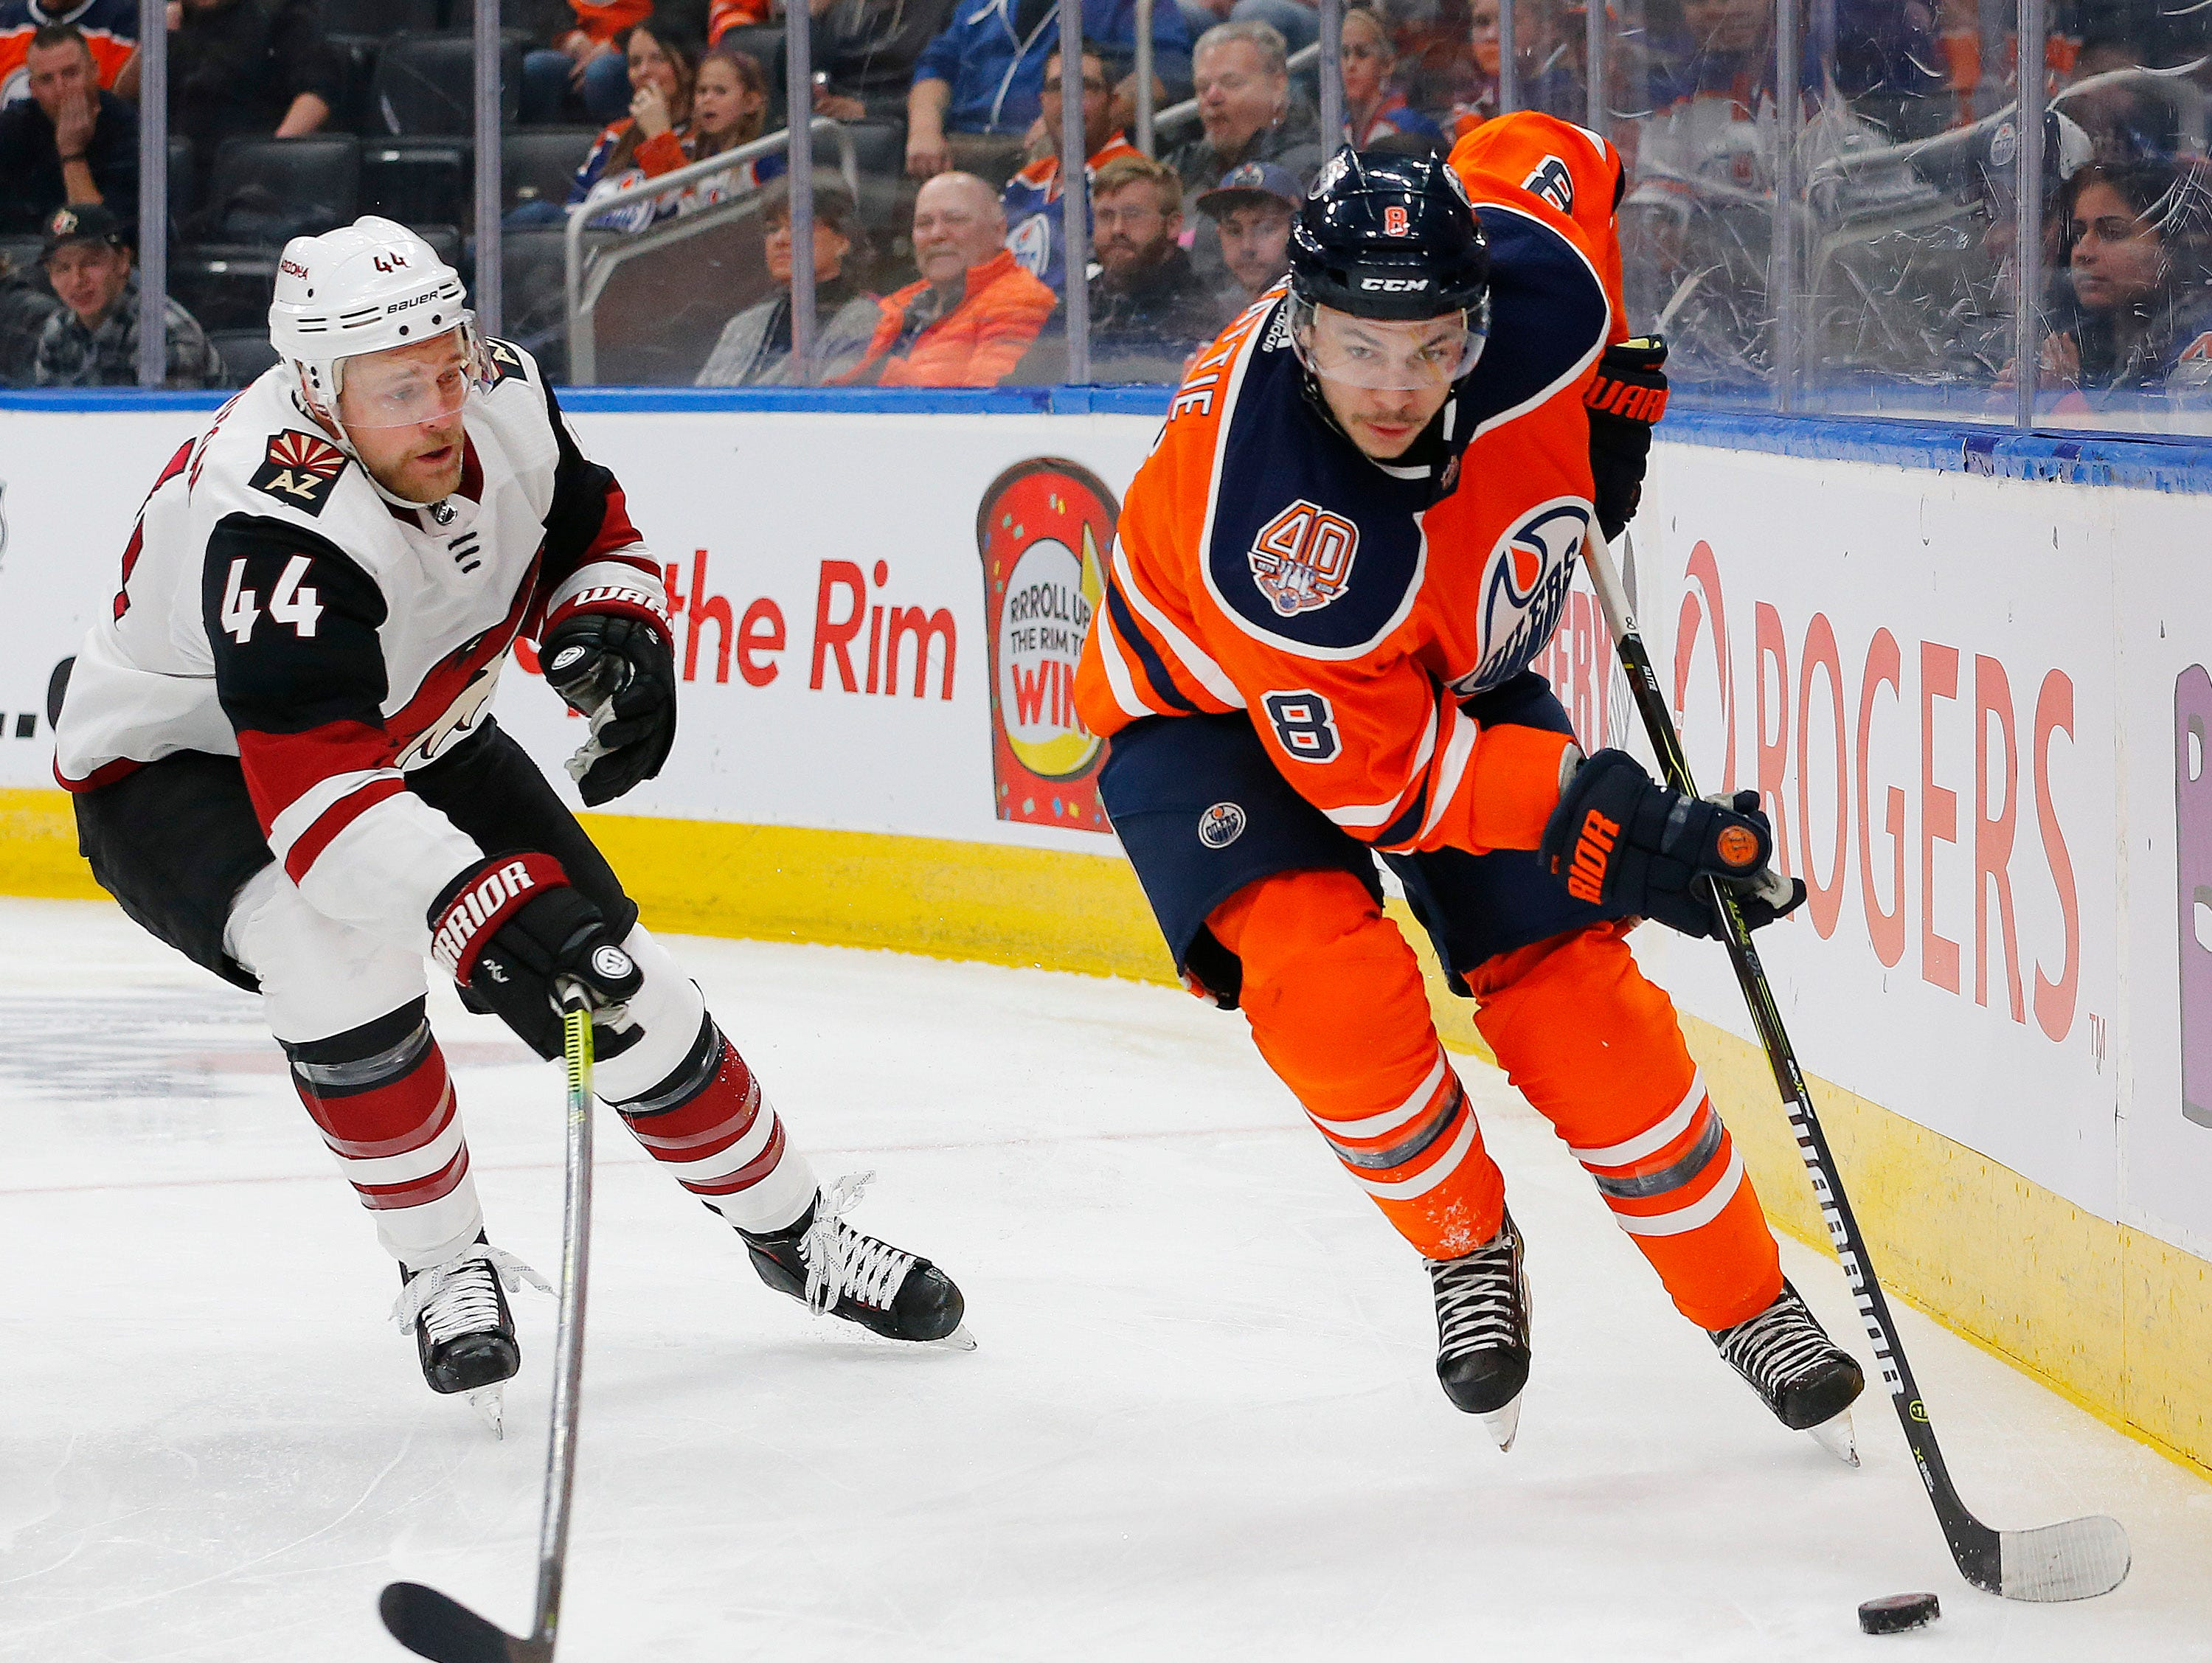 Feb 19, 2019; Edmonton, Alberta, CAN; Edmonton Oilers forward Ty Rattie (8) moves the puck against Arizona Coyotes defensemen Kevin Connauton (44) at Rogers Place. Mandatory Credit: Perry Nelson-USA TODAY Sports